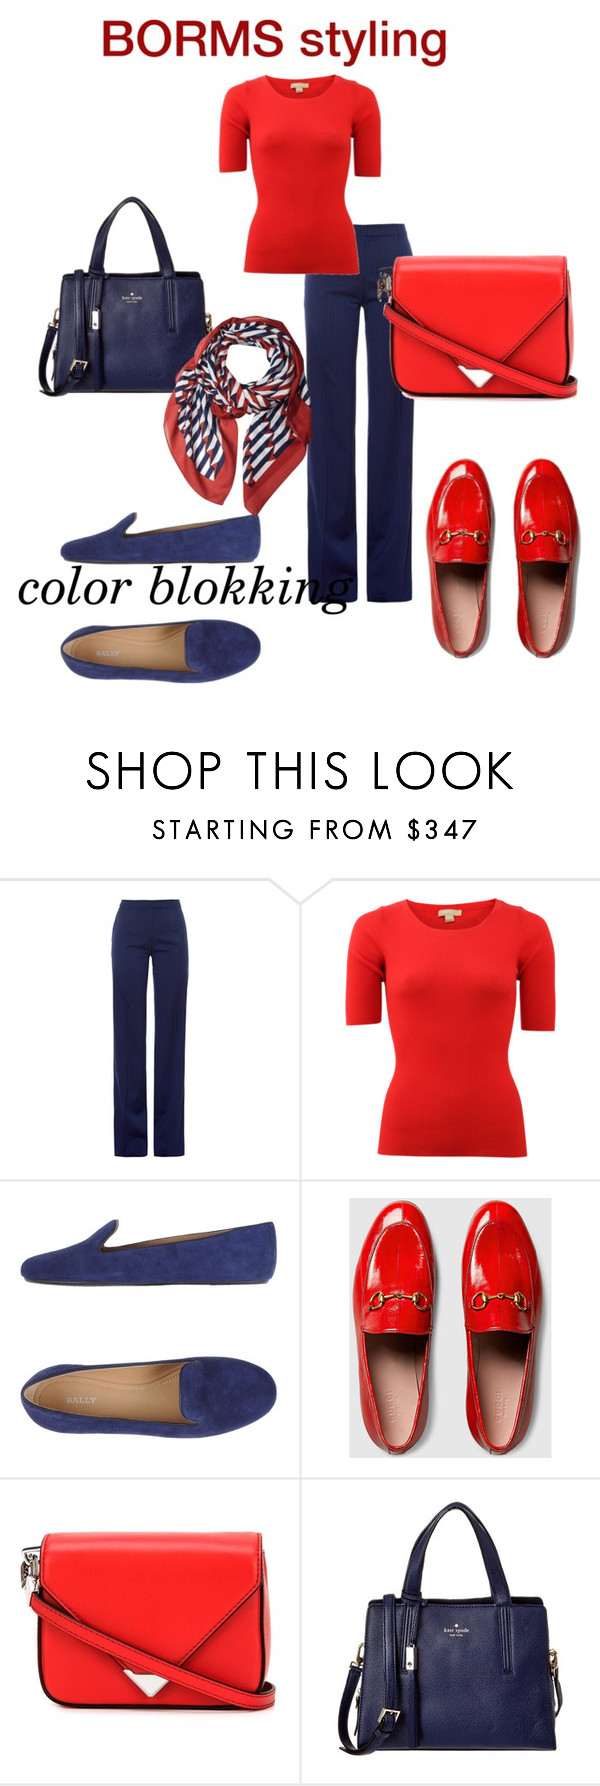 """color blokking"" by cat-line on Polyvore featuring mode, Altuzarra, Michael Kors, Bally, Gucci, Alexander Wang, Kate Spade en Marc Jacobs"